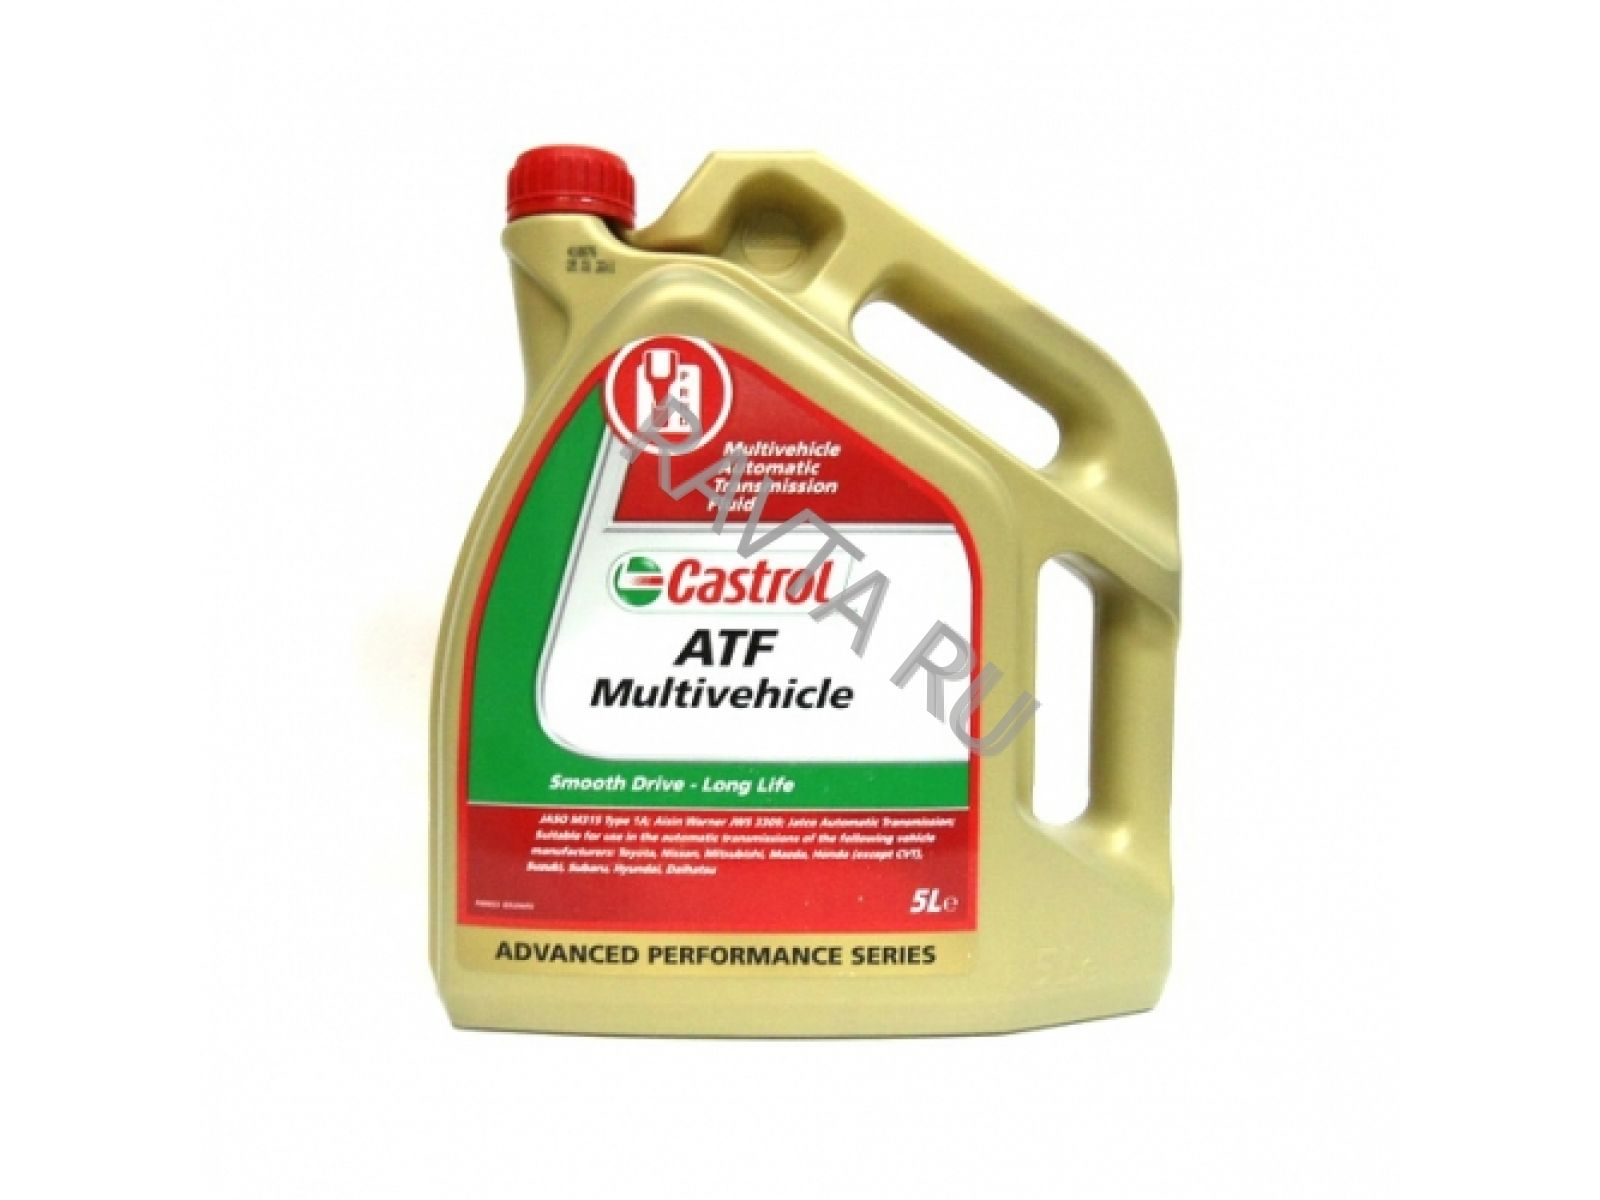 castrol Масло Castrol ATF Multivehicle (5л) 154F32